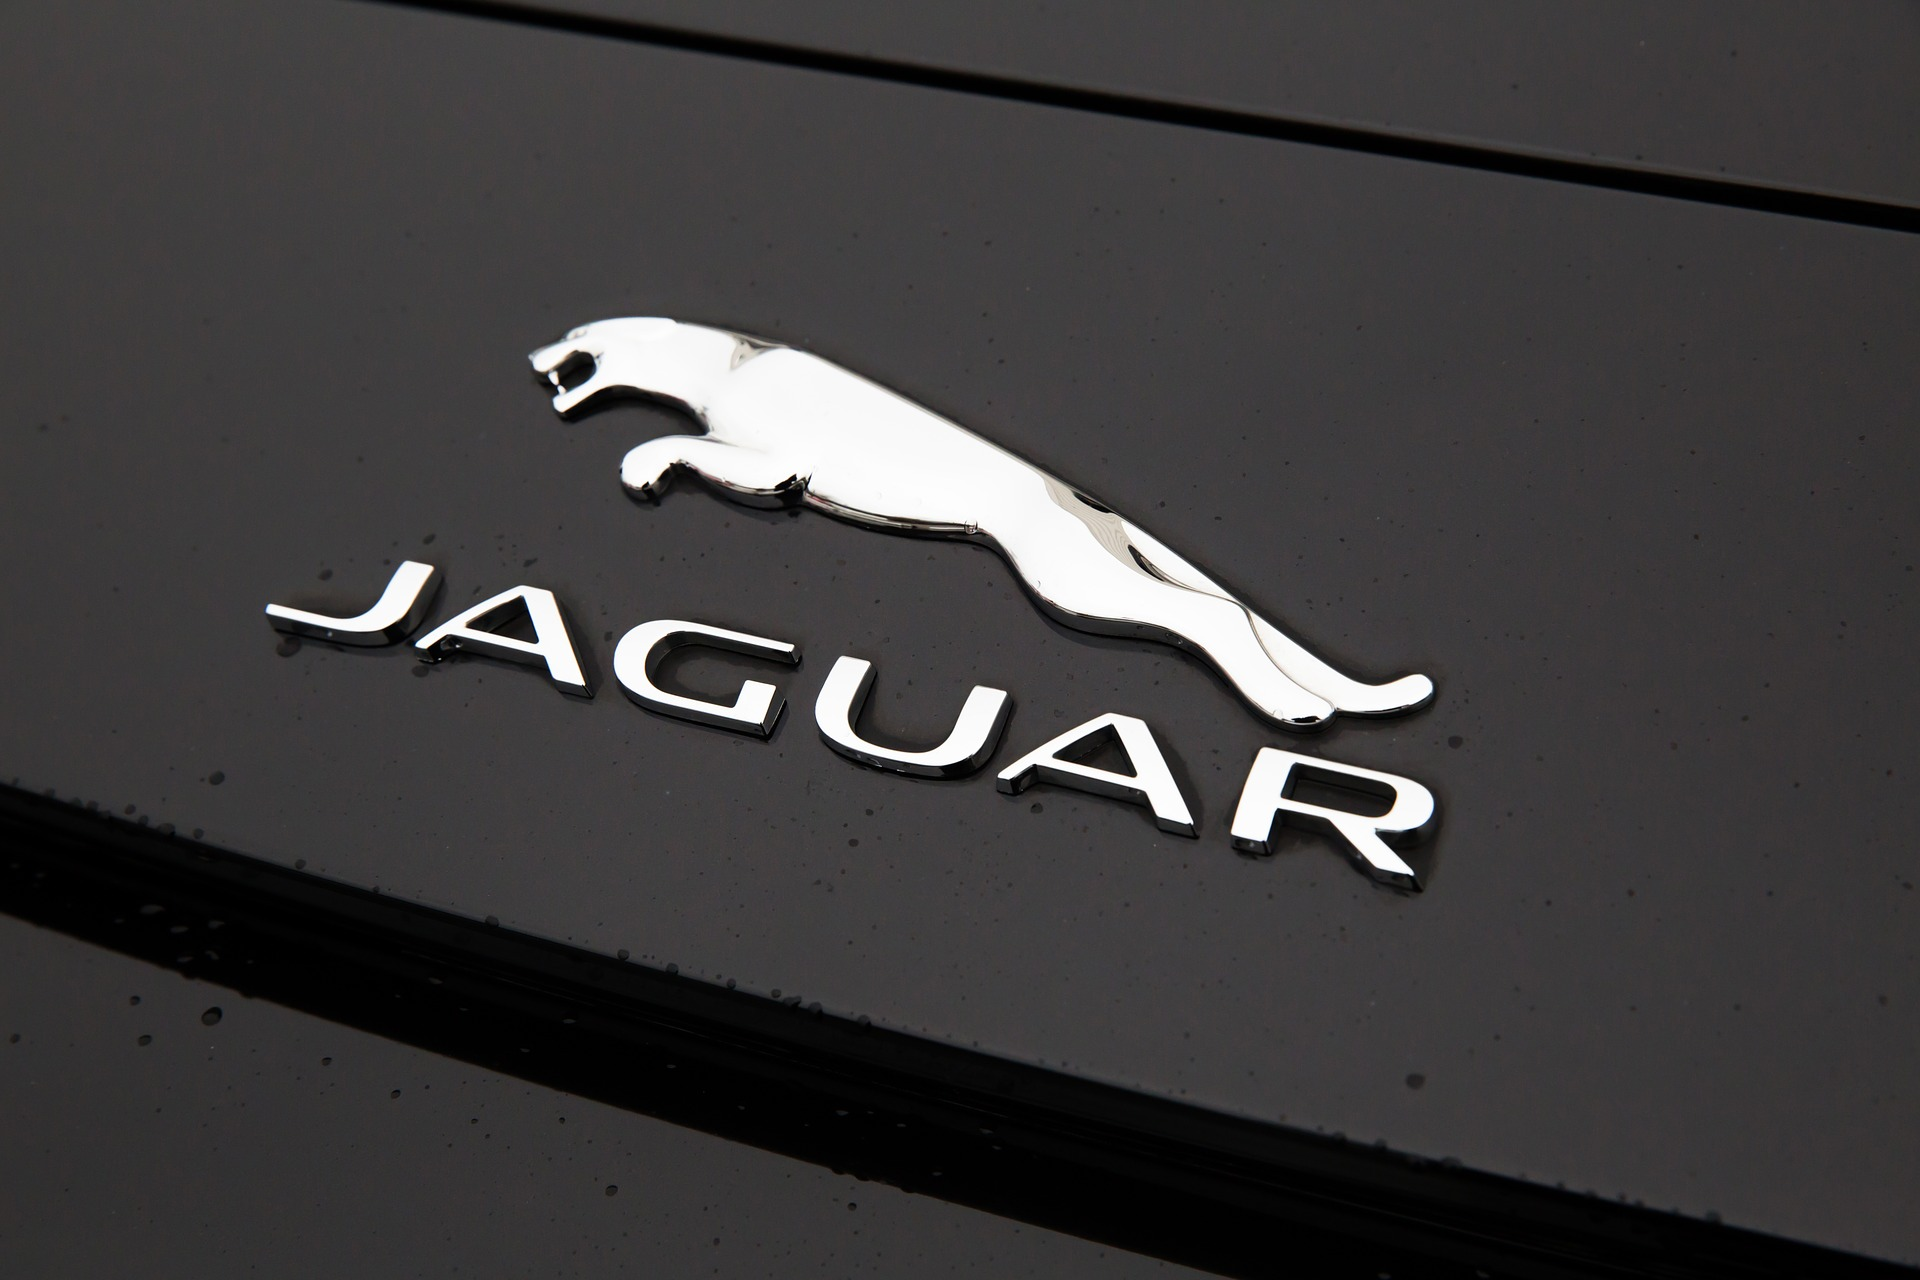 Jaguar industrializes outside the uk and launches new suvs tata jaguar industrializes outside the uk and launches new suvs tata motors limited nysettm seeking alpha biocorpaavc Gallery